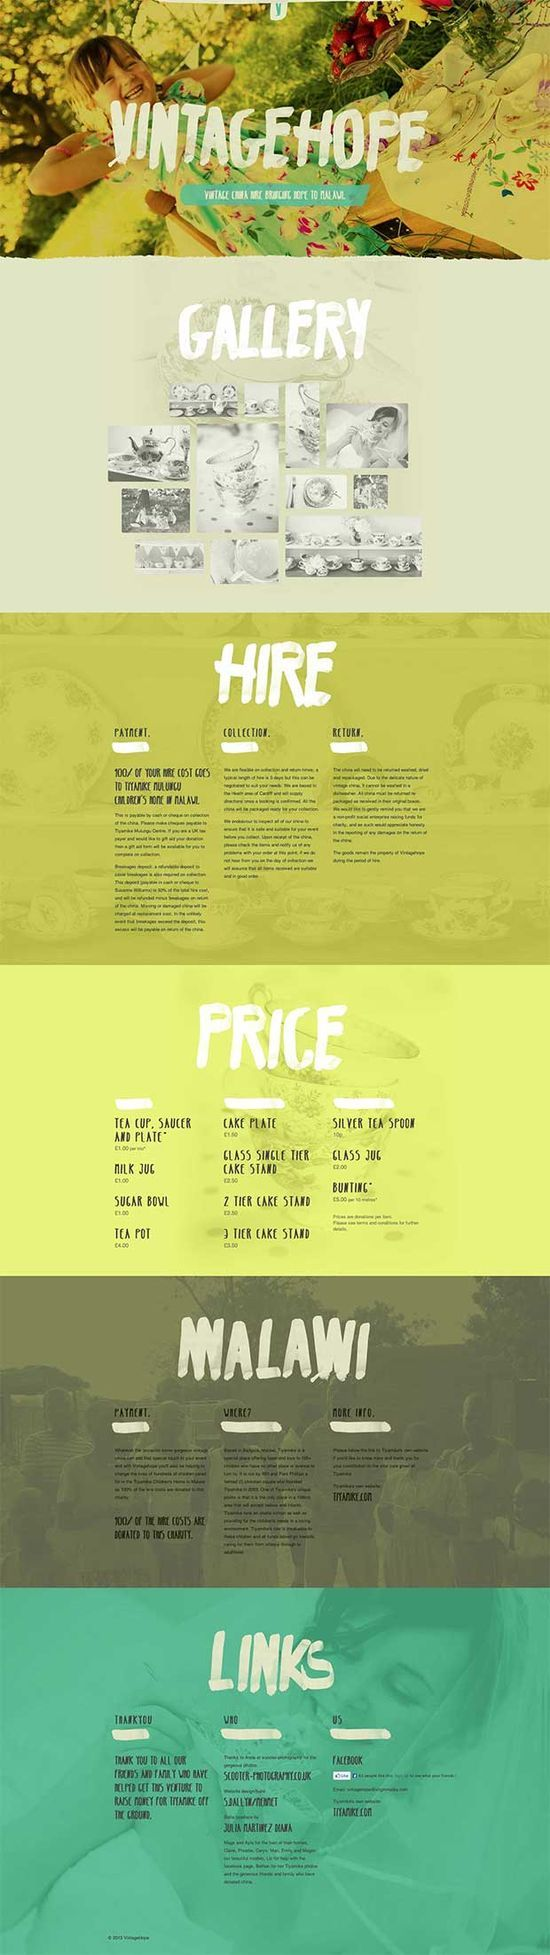 // web #graphic design #poster #Illustrations| http://illustrationsposters.hana.lemoncoin.org